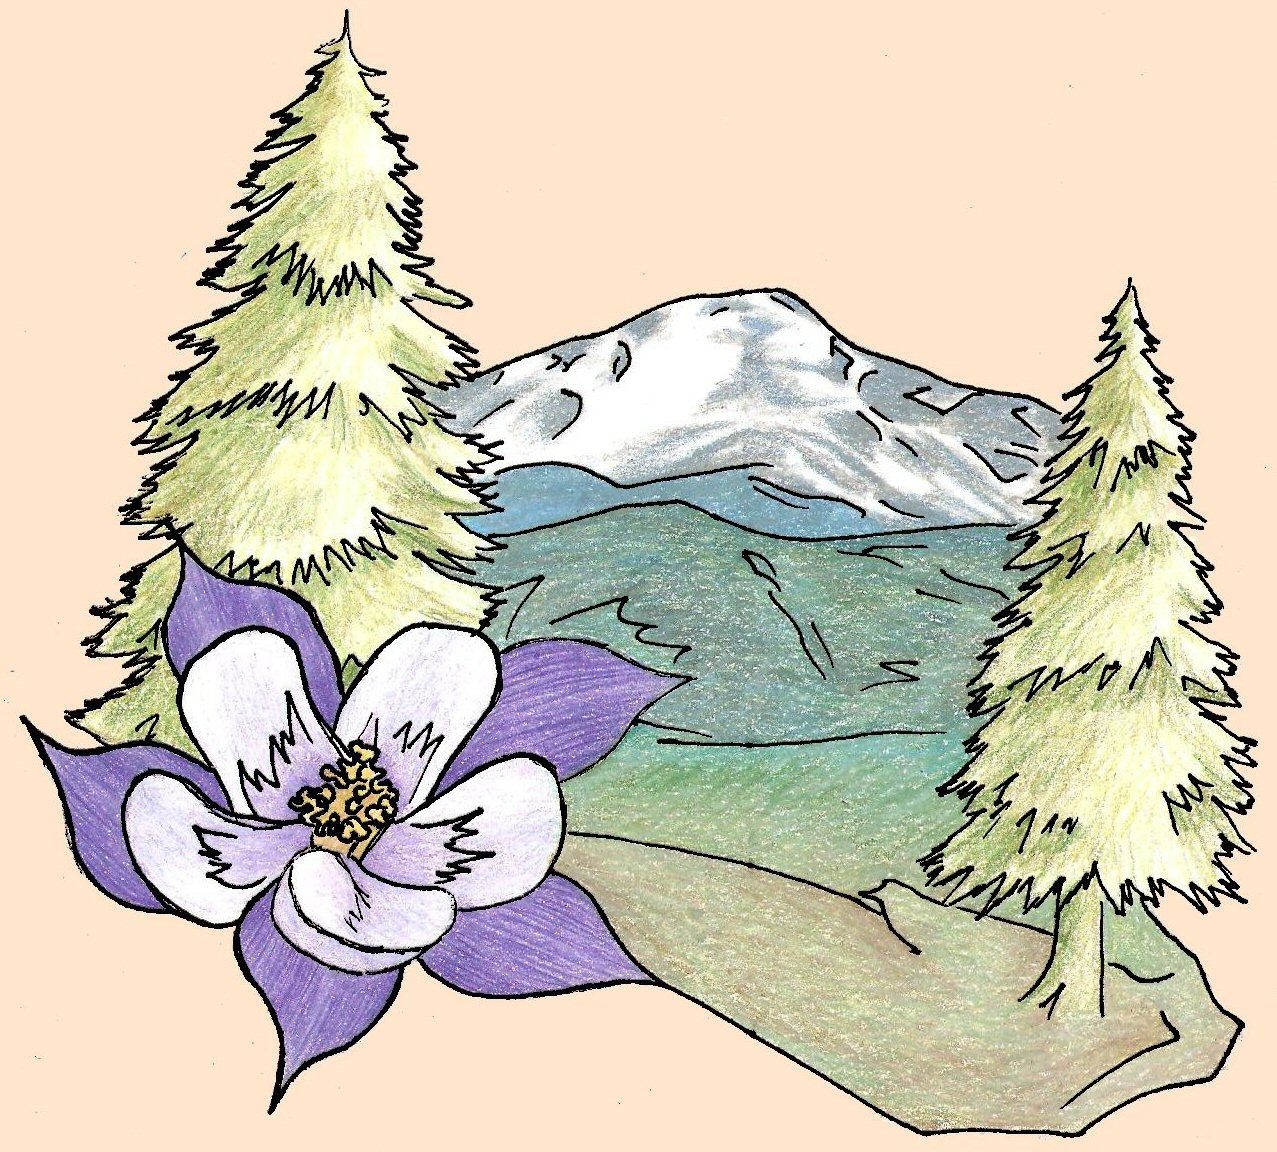 Barb's Colorado-Themed Tattoo Design